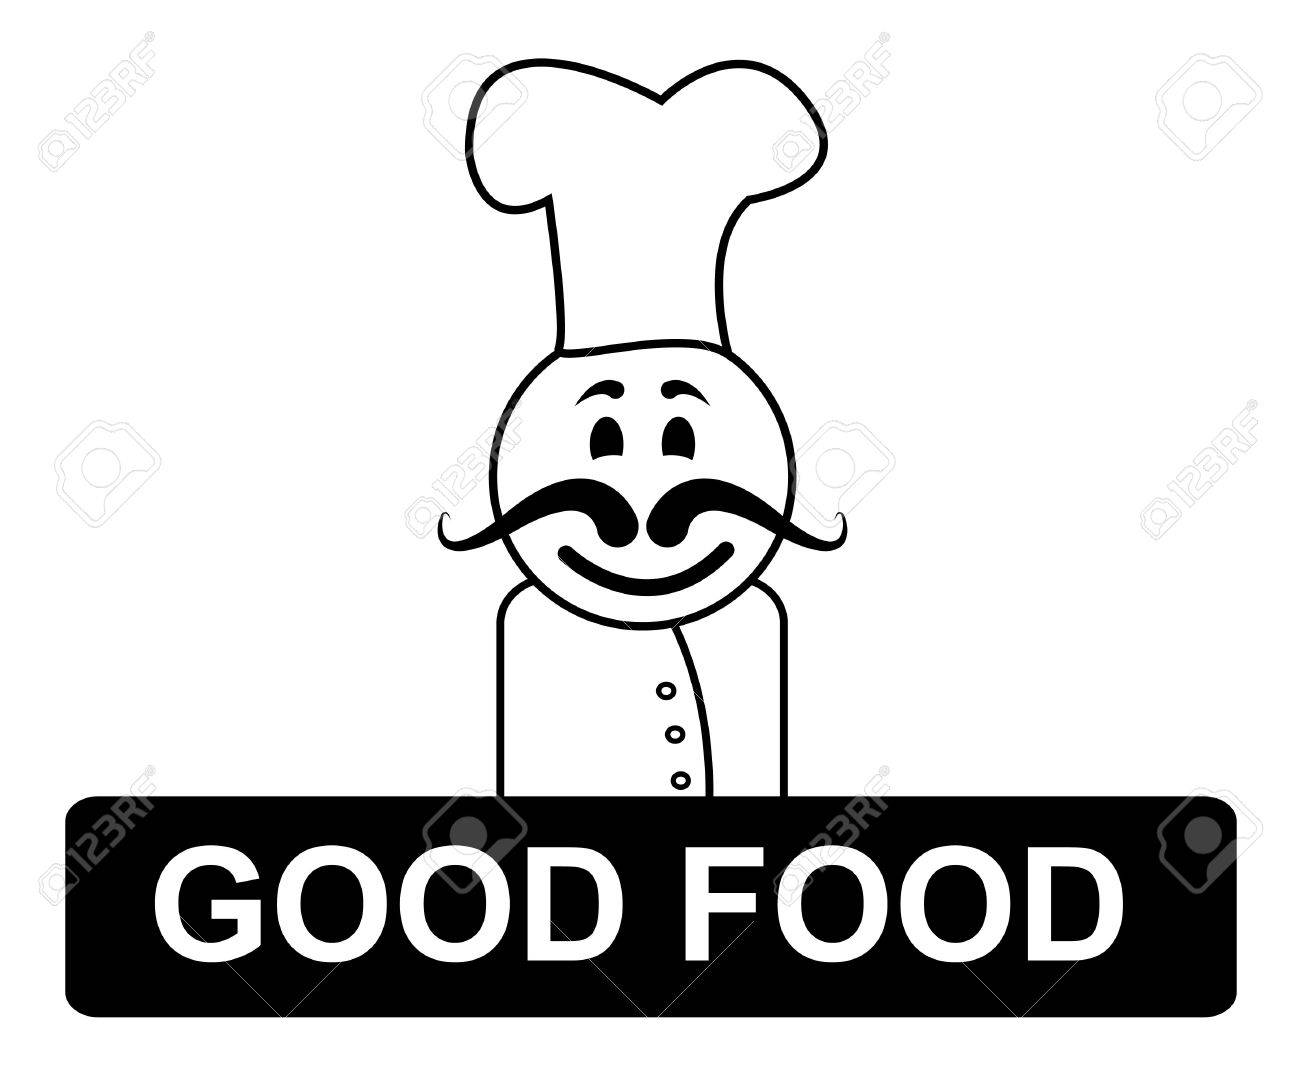 Good food chef meaning cooking in kitchen and recipes stock photo good food chef meaning cooking in kitchen and recipes stock photo 33352453 forumfinder Choice Image